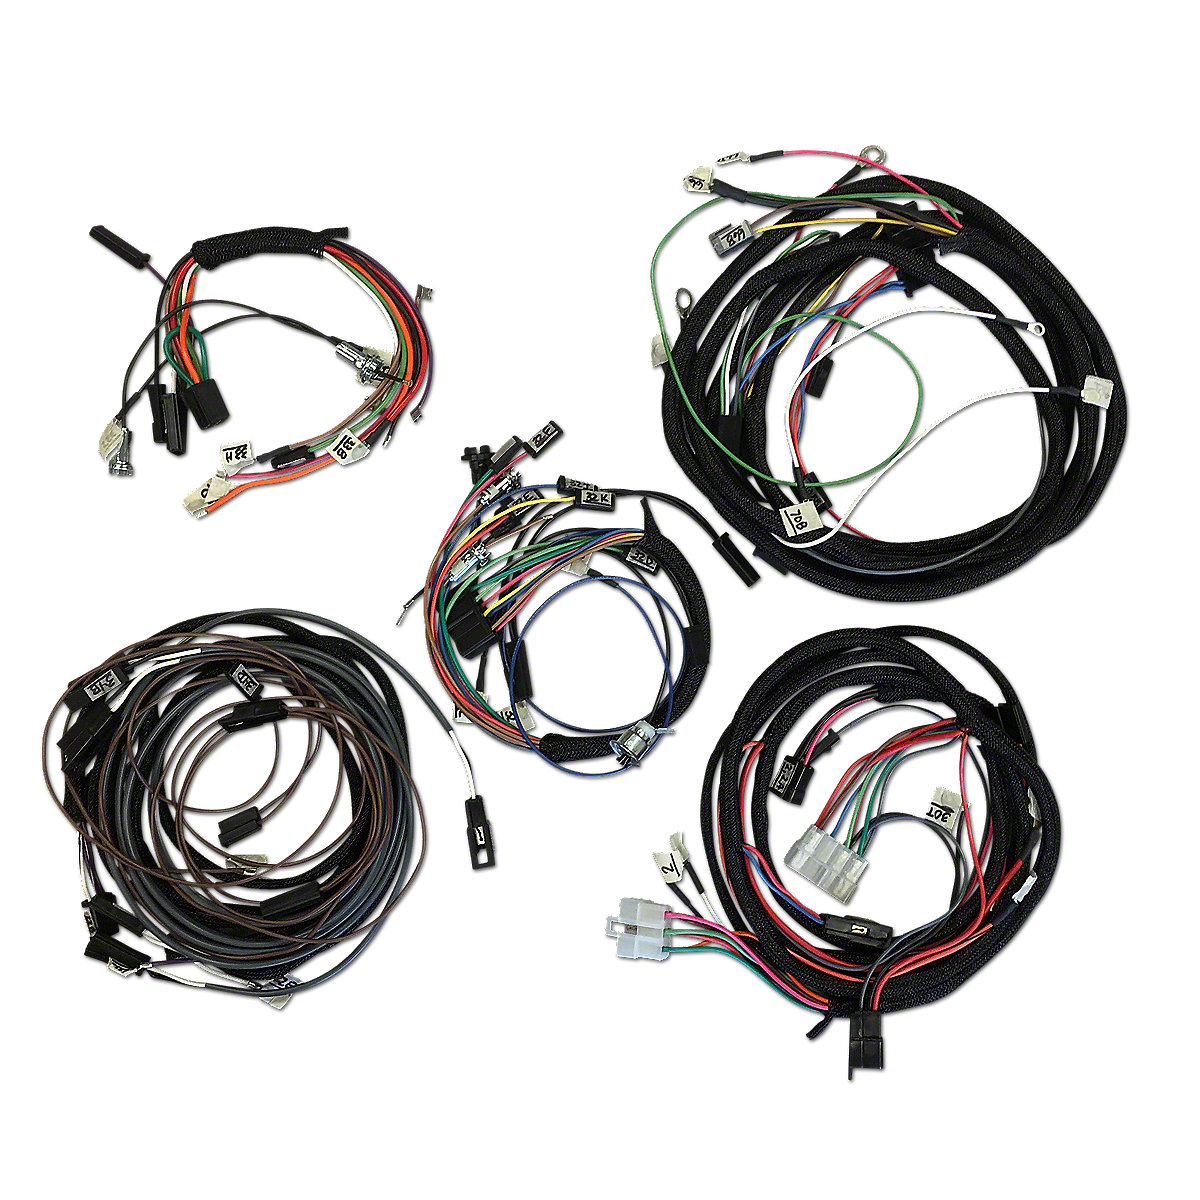 restoration quality wiring harness ihs3548